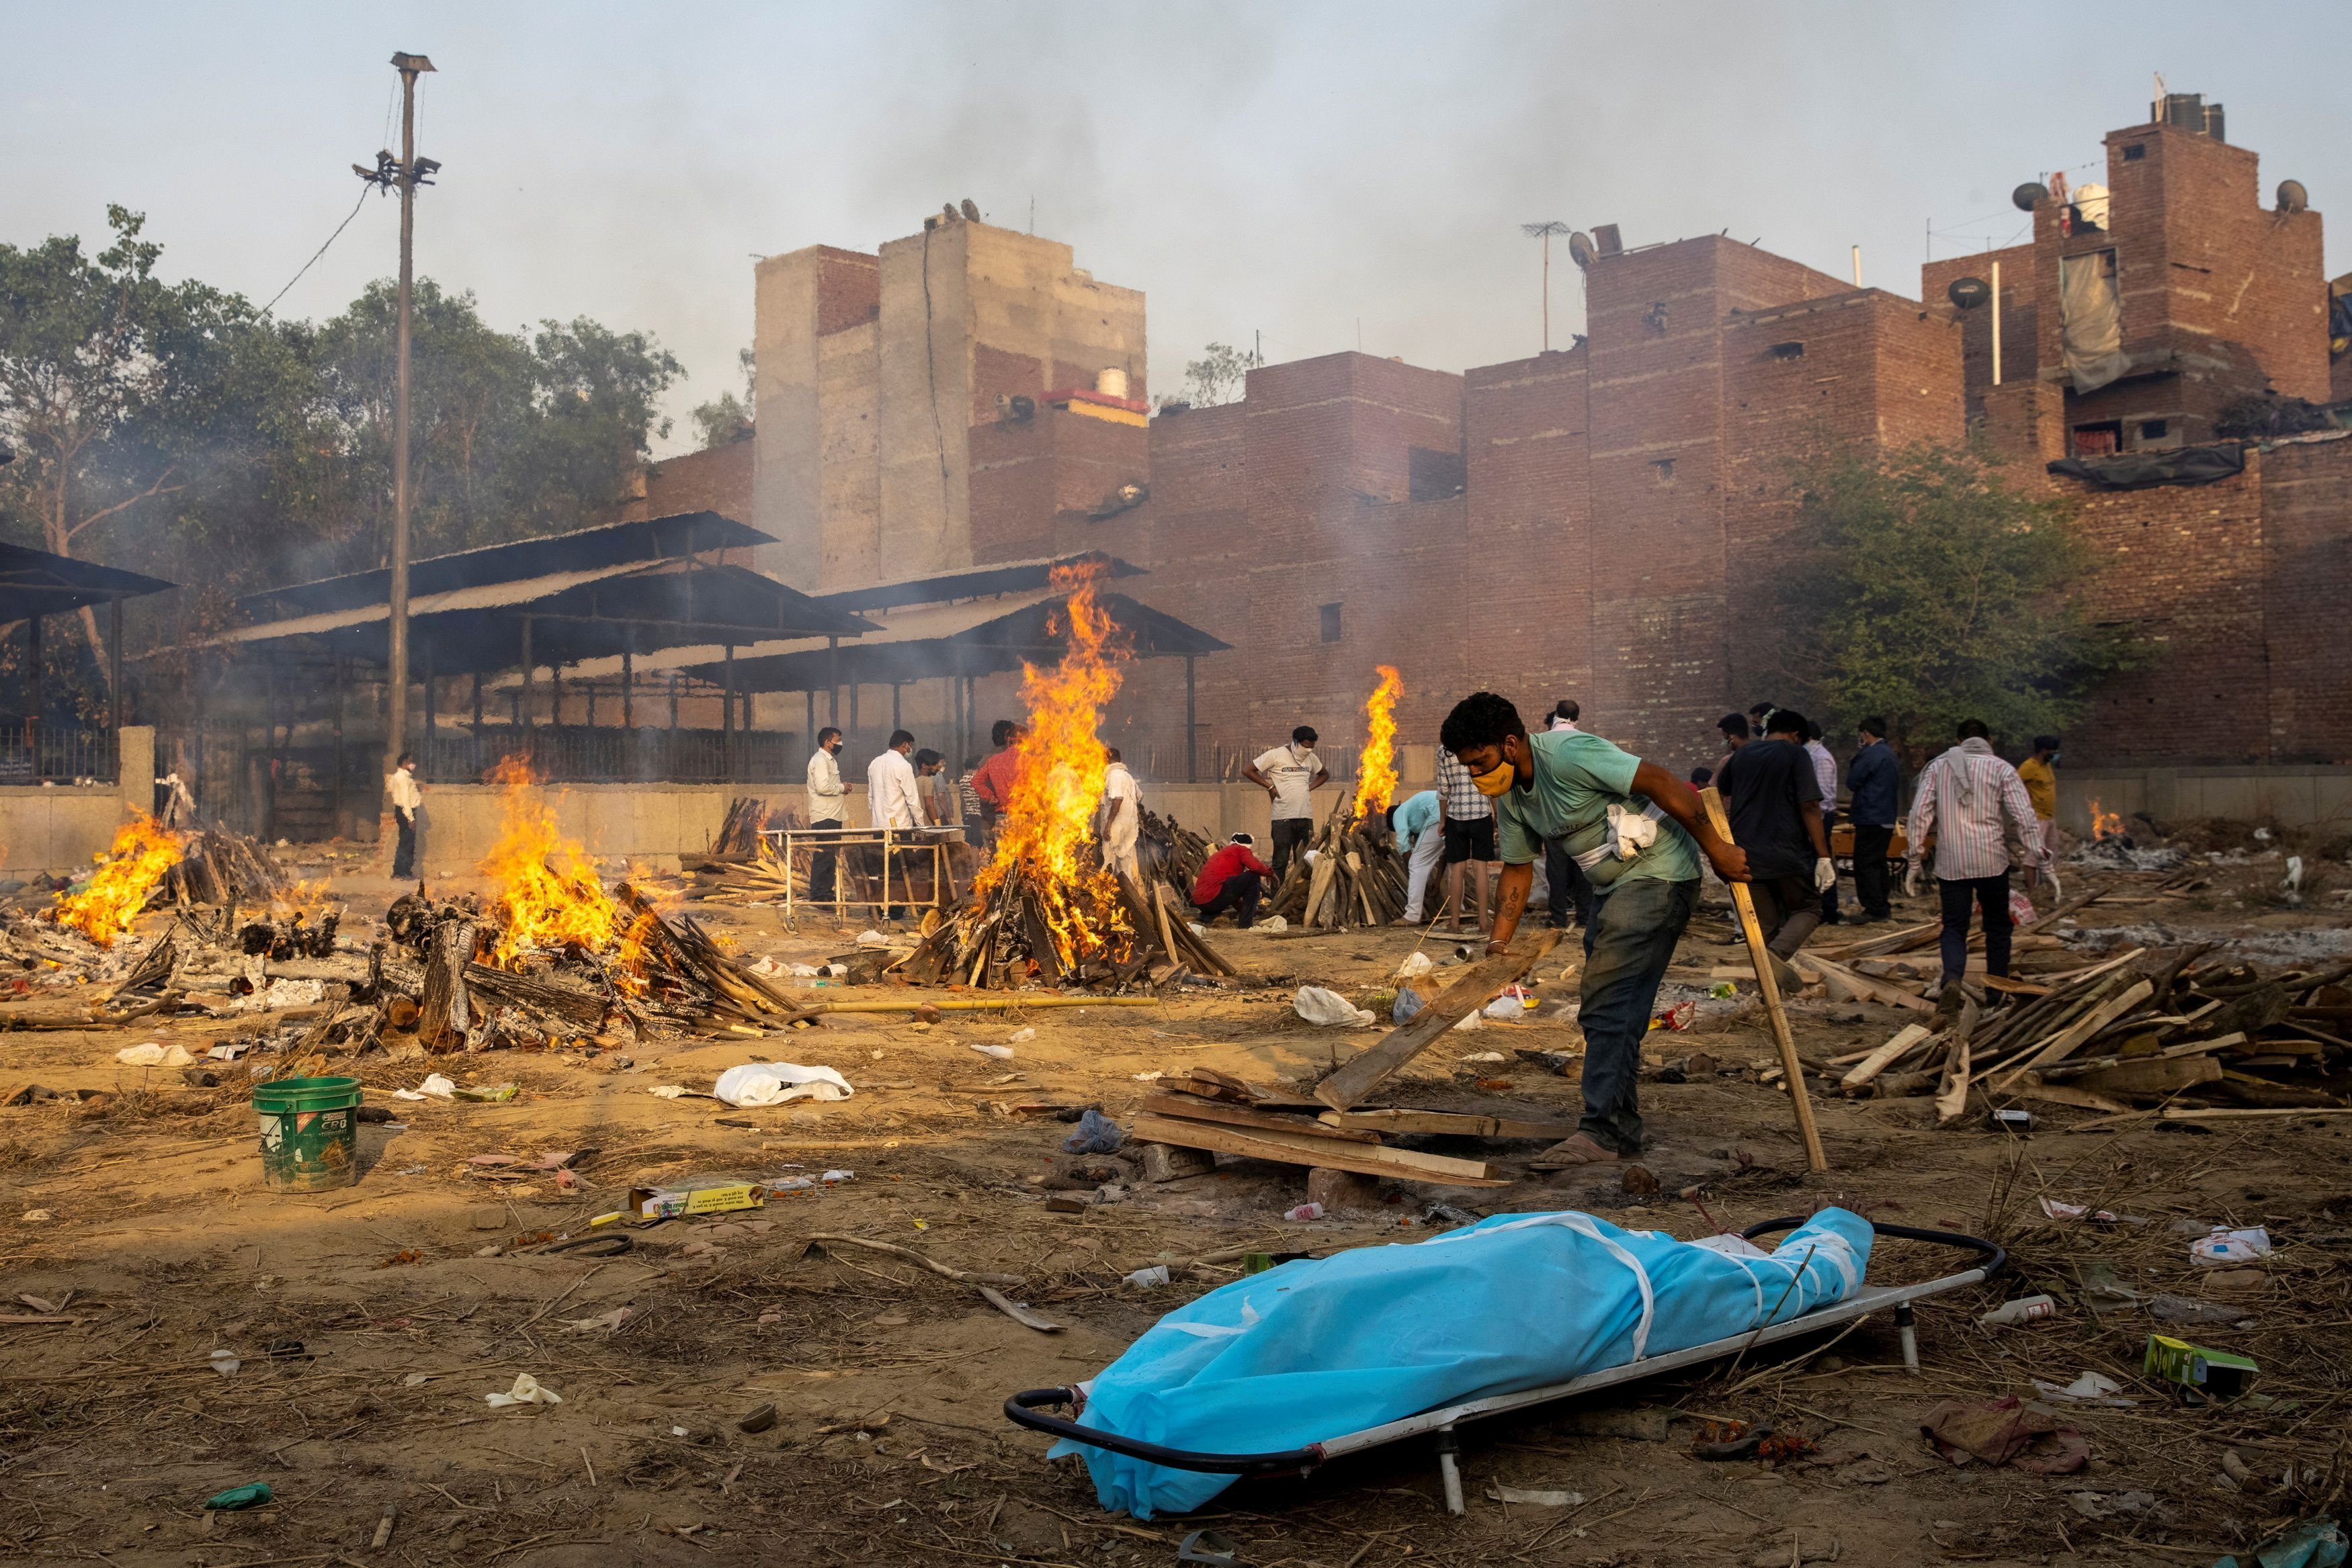 A man prepares a funeral pyre to cremate the body of a person, who died due to the coronavirus disease (COVID-19), at a crematorium ground in New Delhi